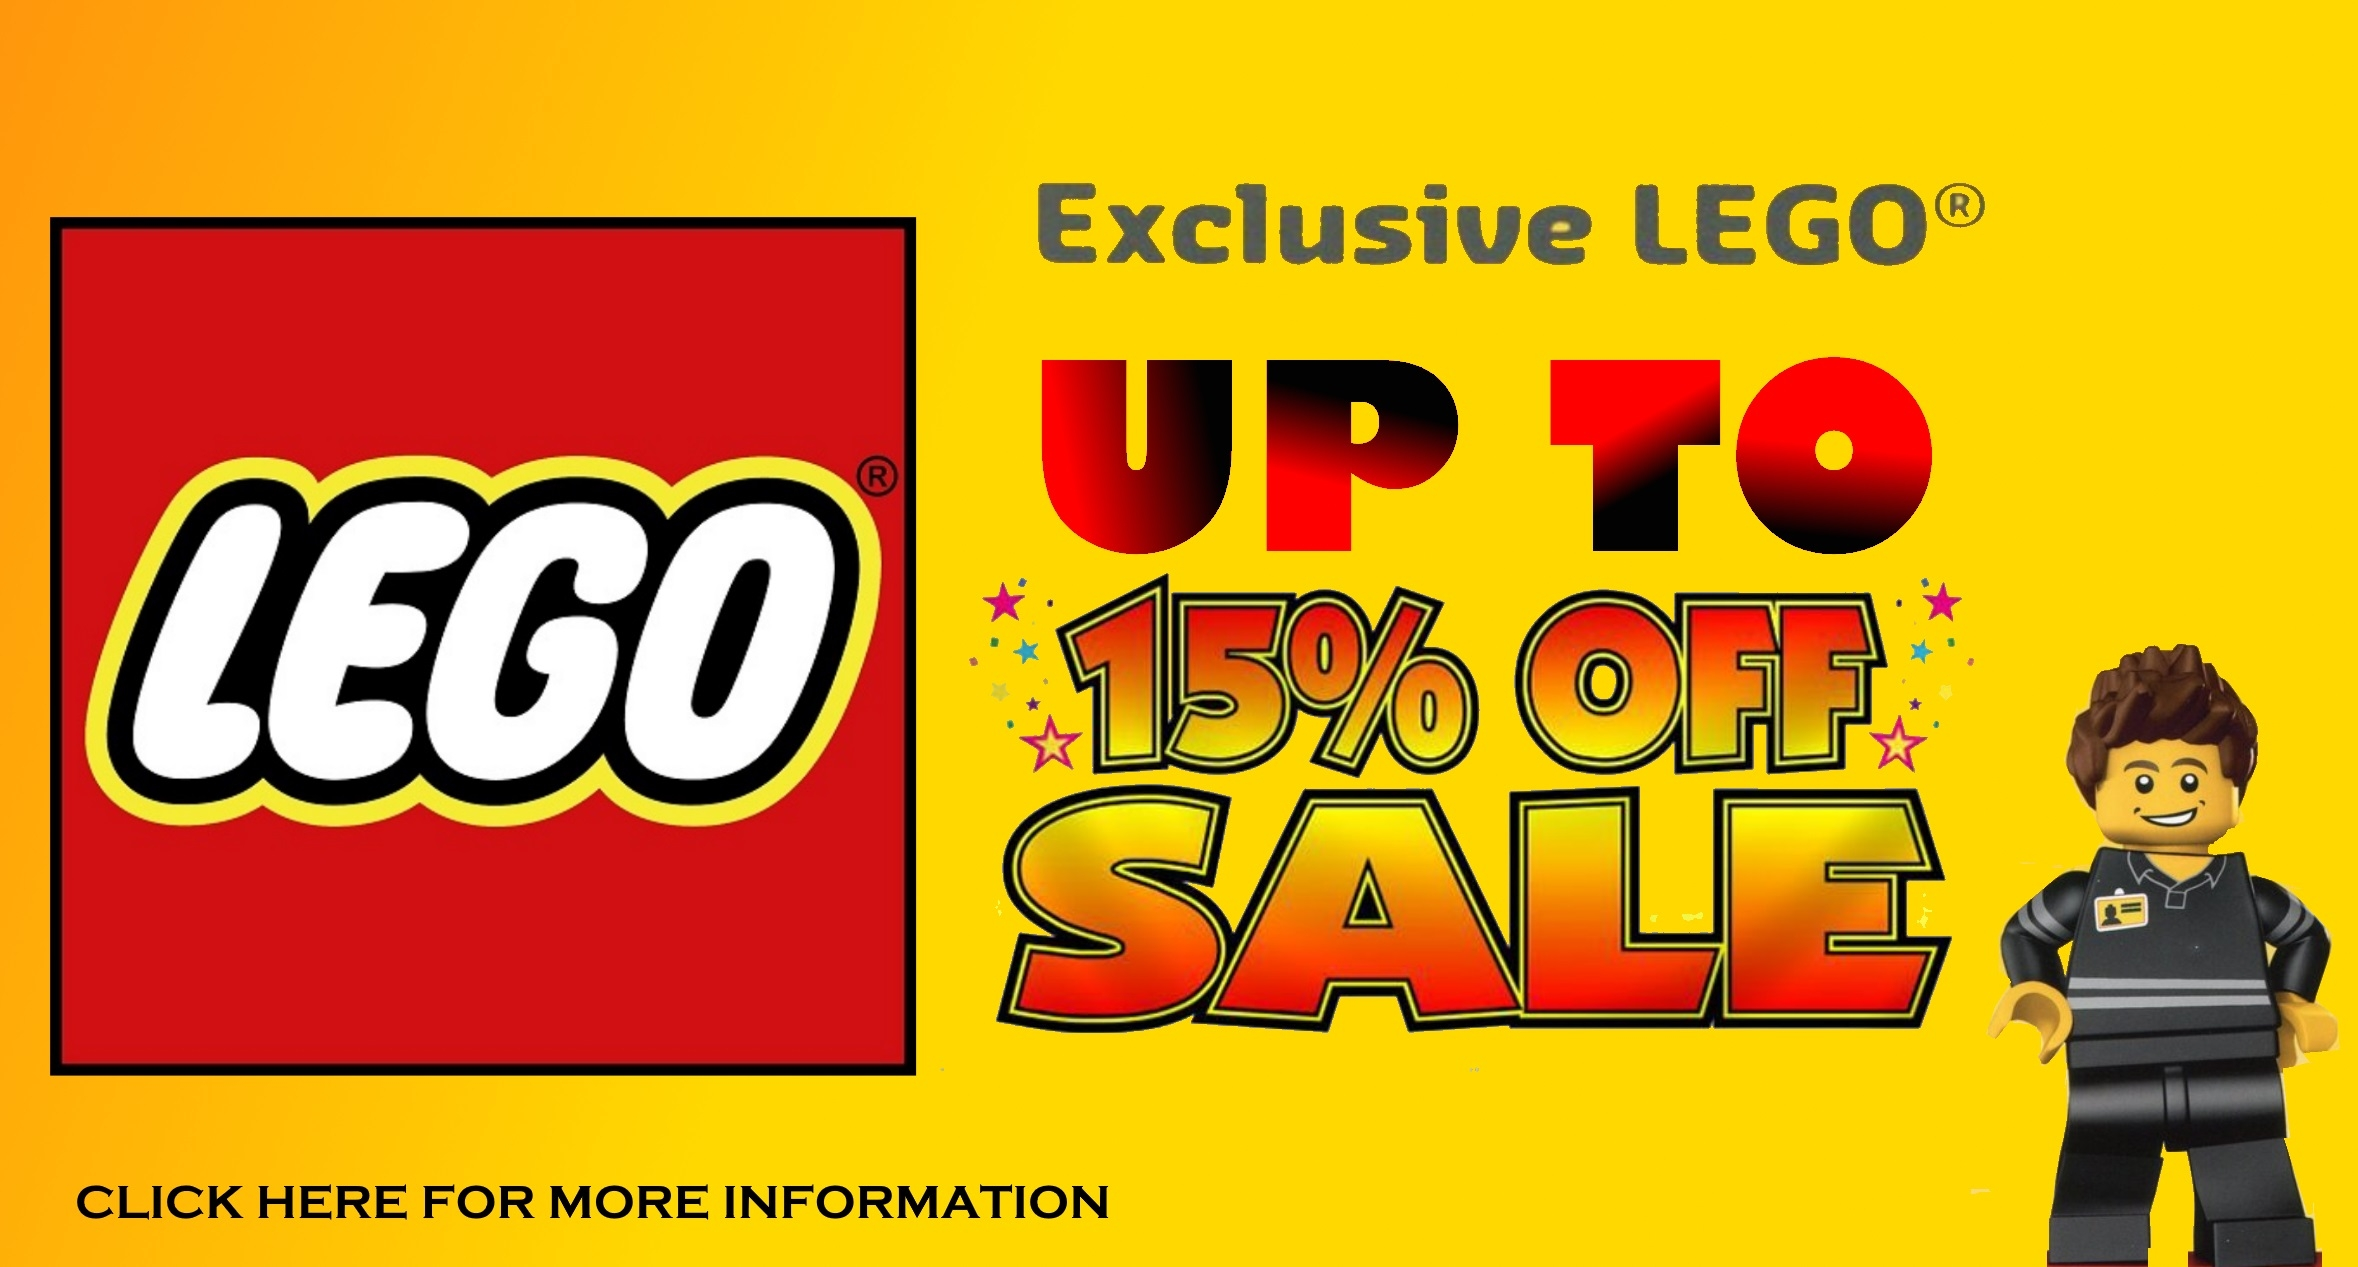 UP TO 15% OFF SALES FOR LEGO EXCLUSIVE